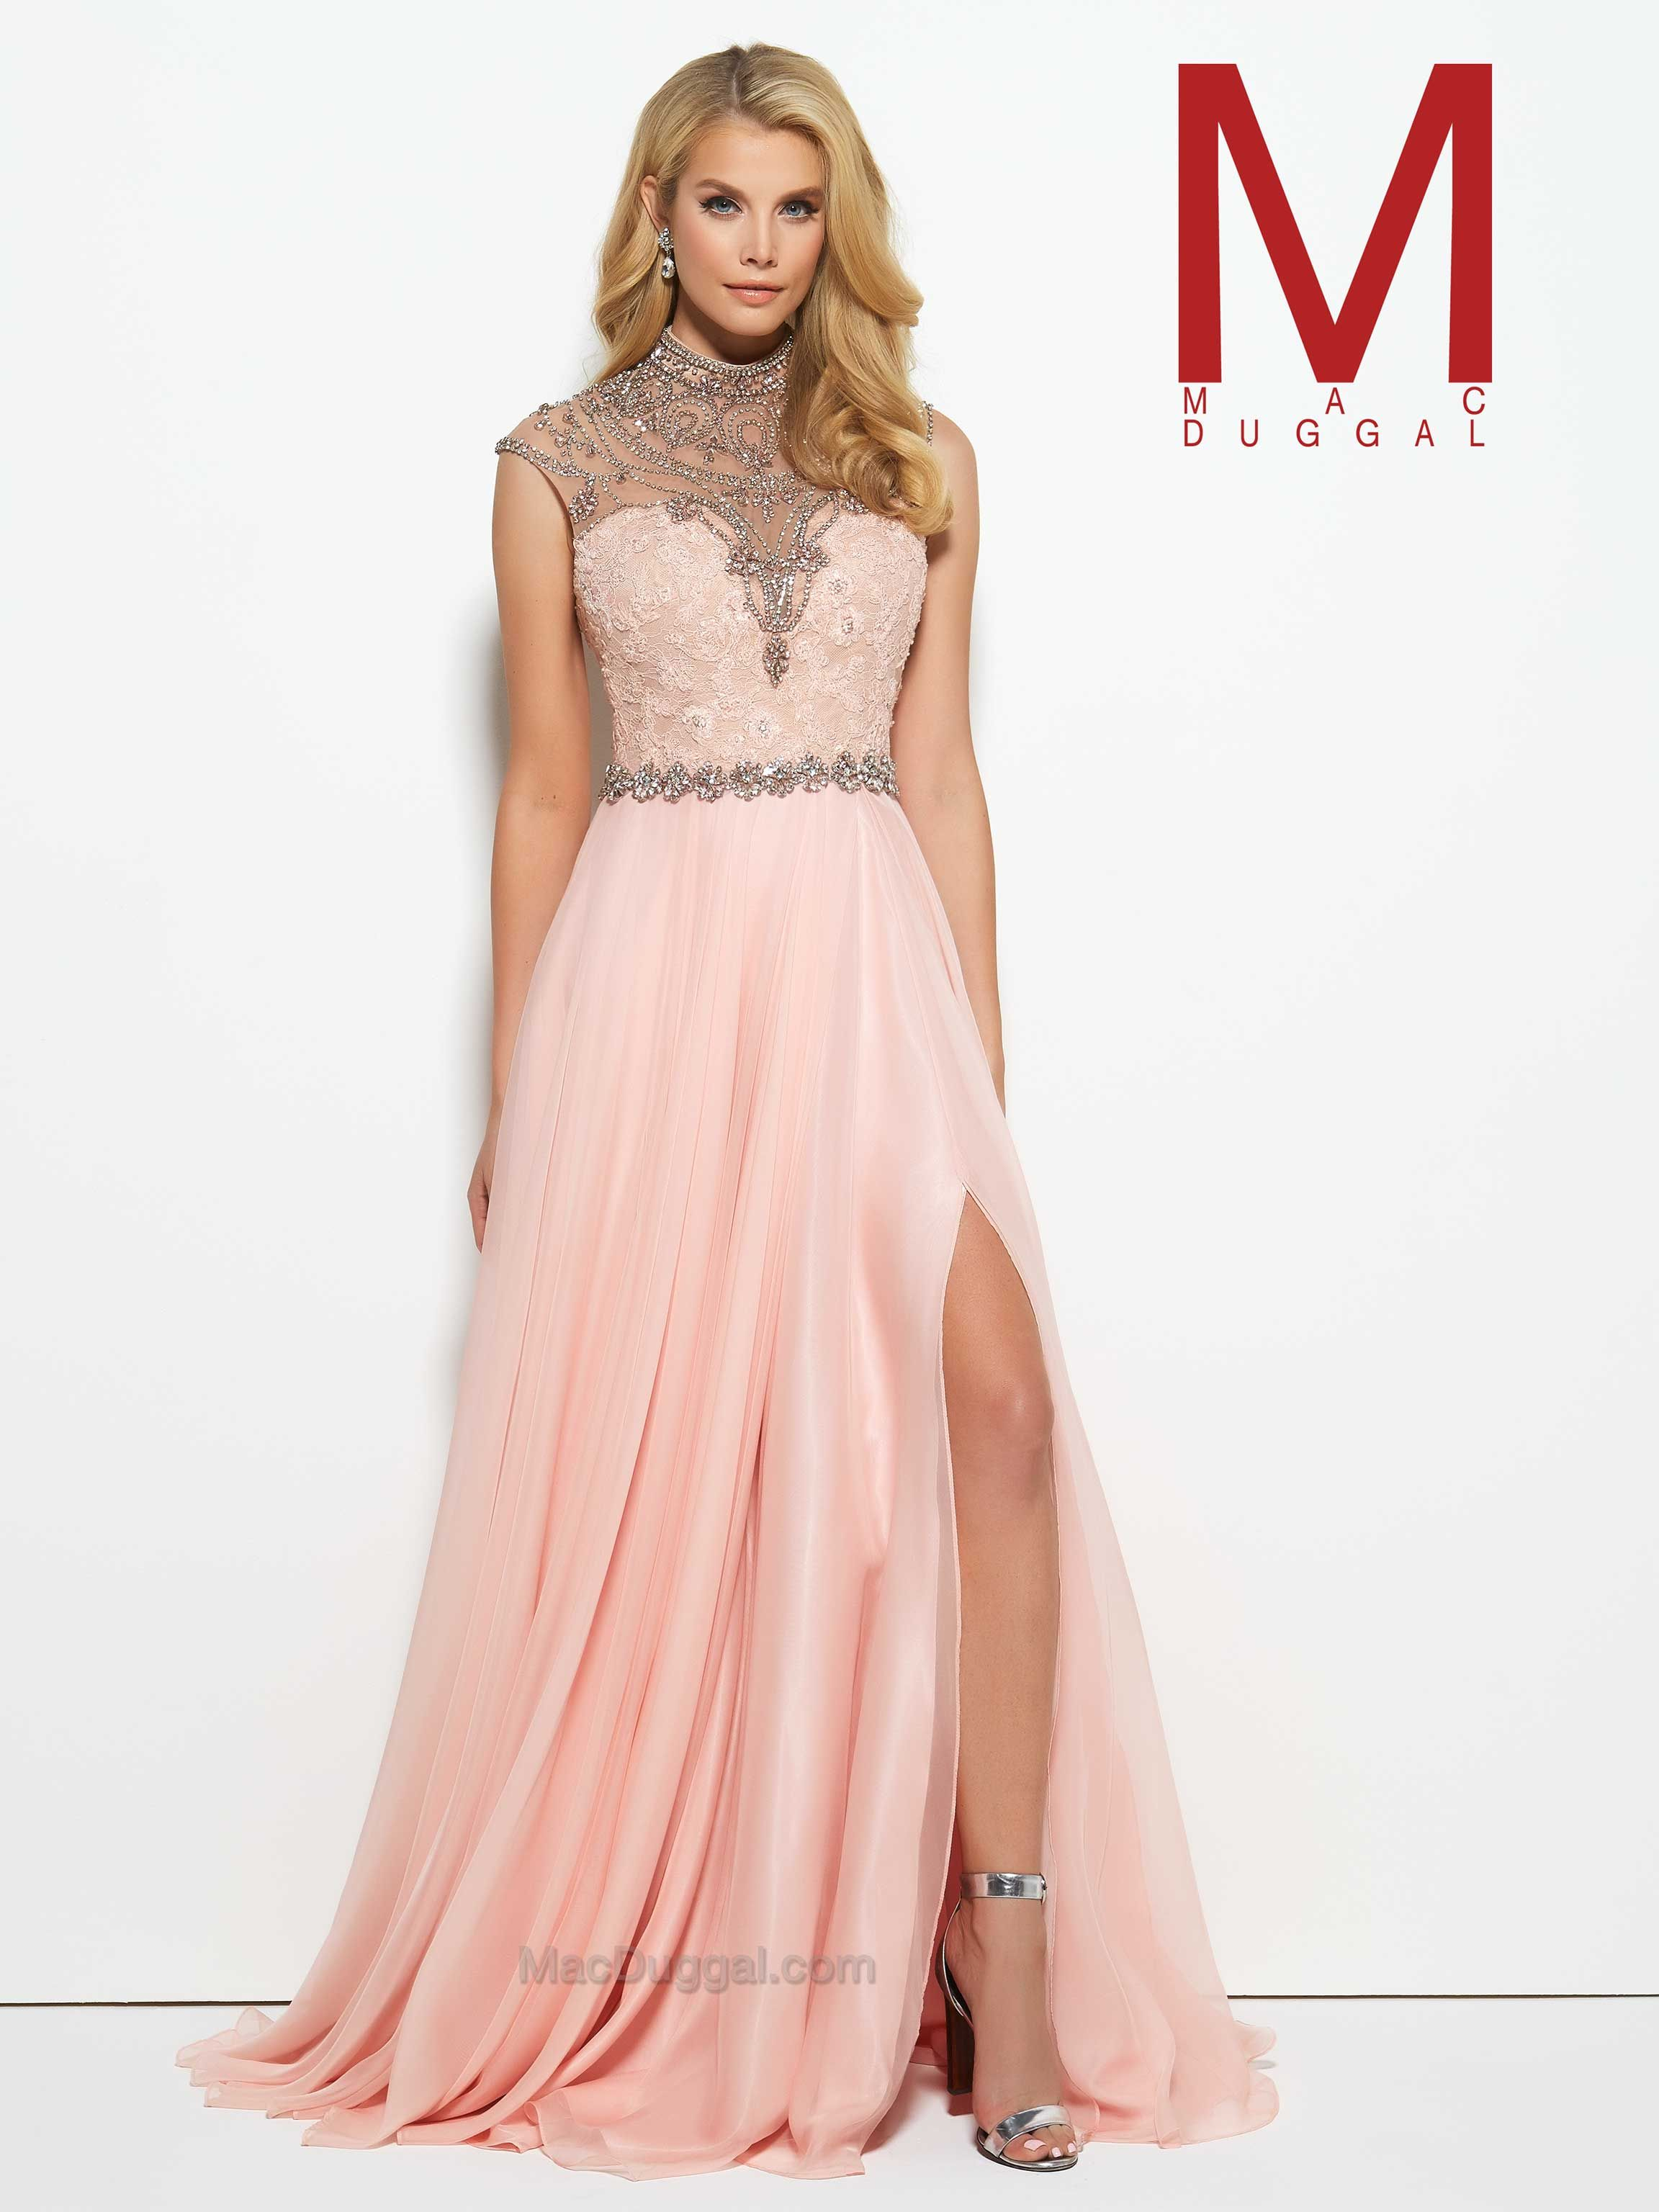 Designer Prom Dresses - Mac Duggal Prom Collection | Cute dress ...